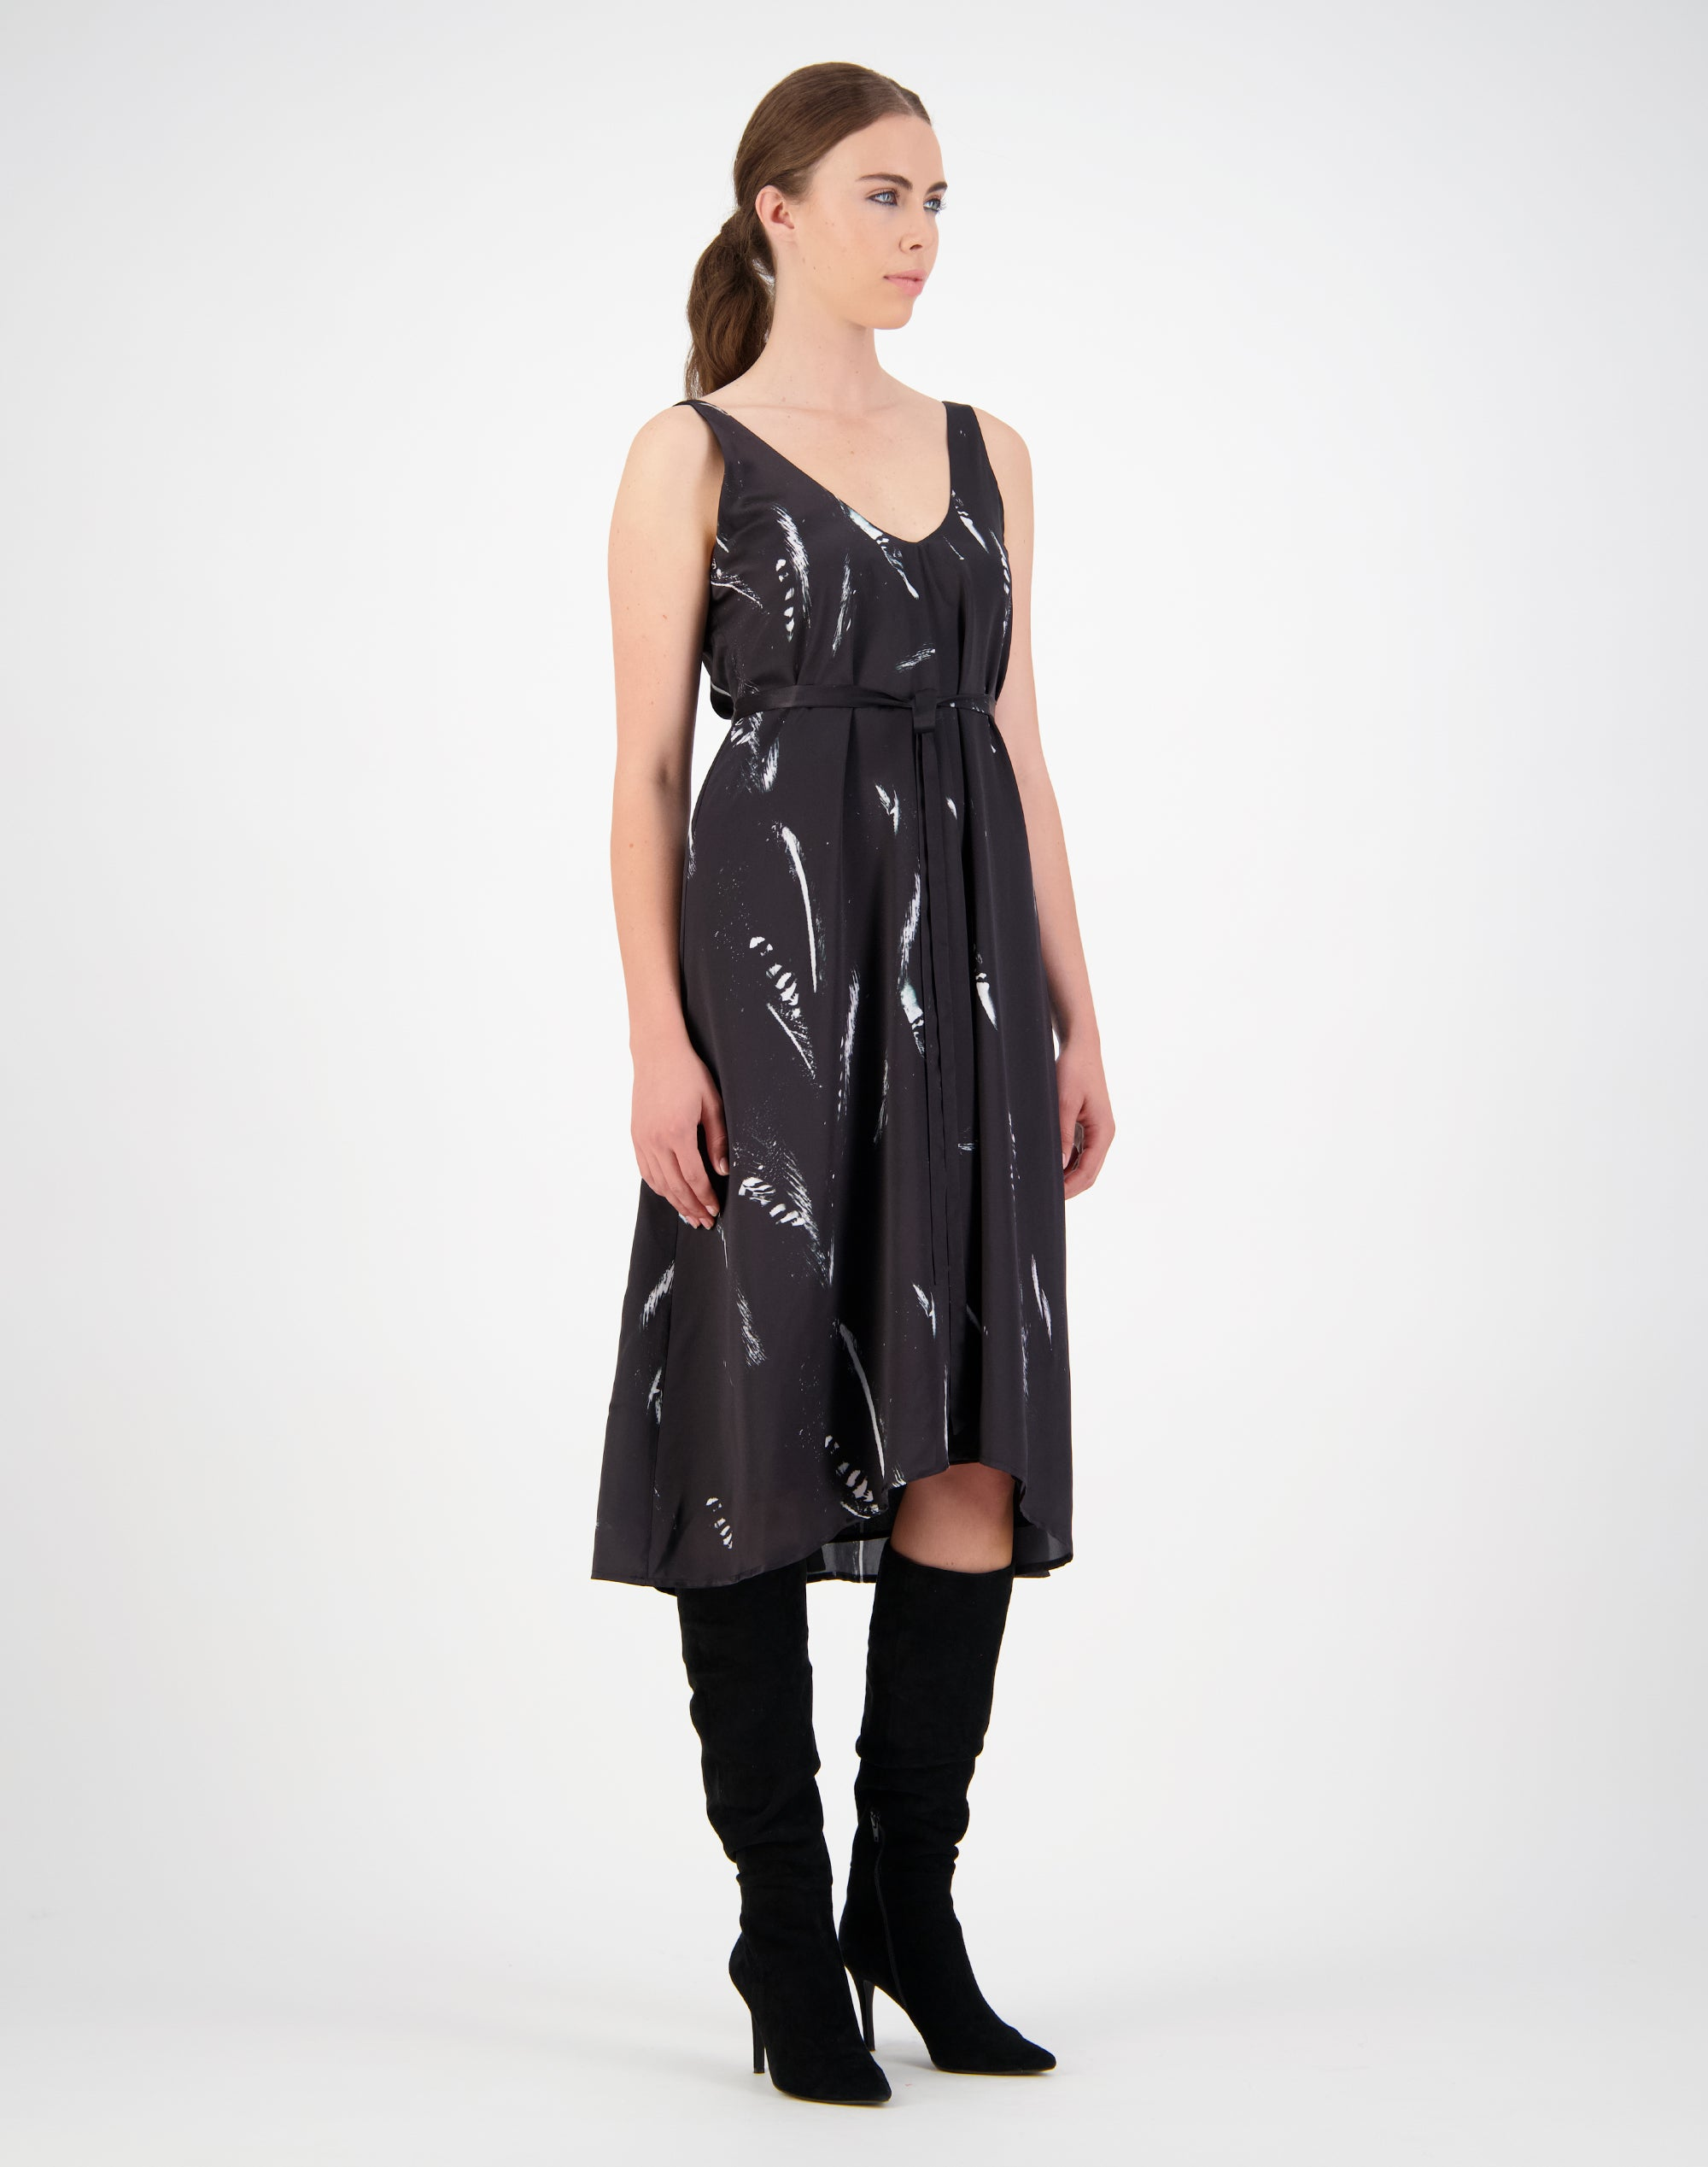 Art Form Silk Dress